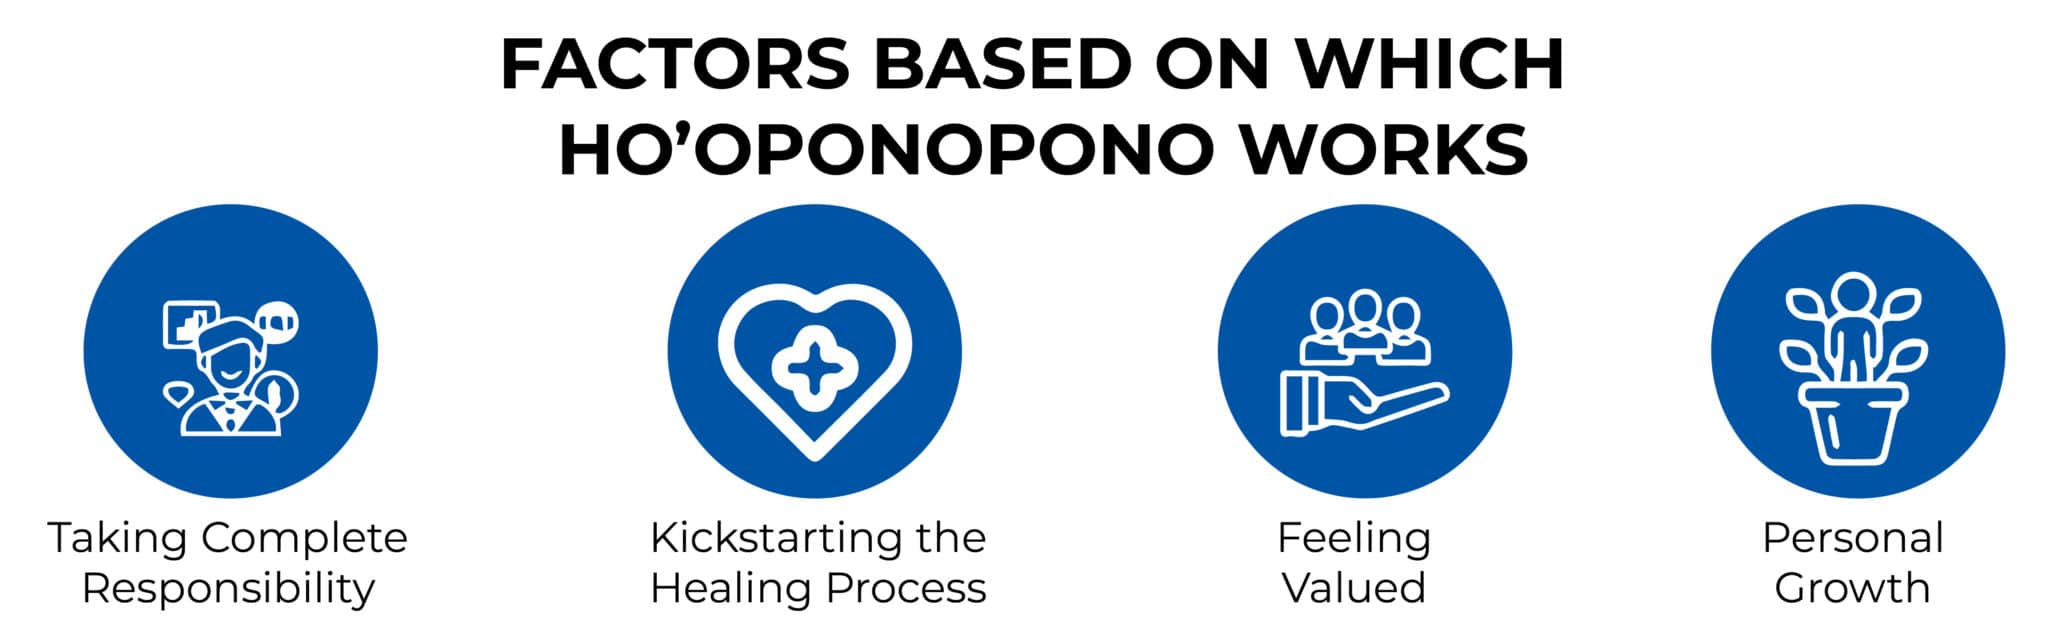 FACTORS BASED ON WHICH HO'OPONOPONO WORKS